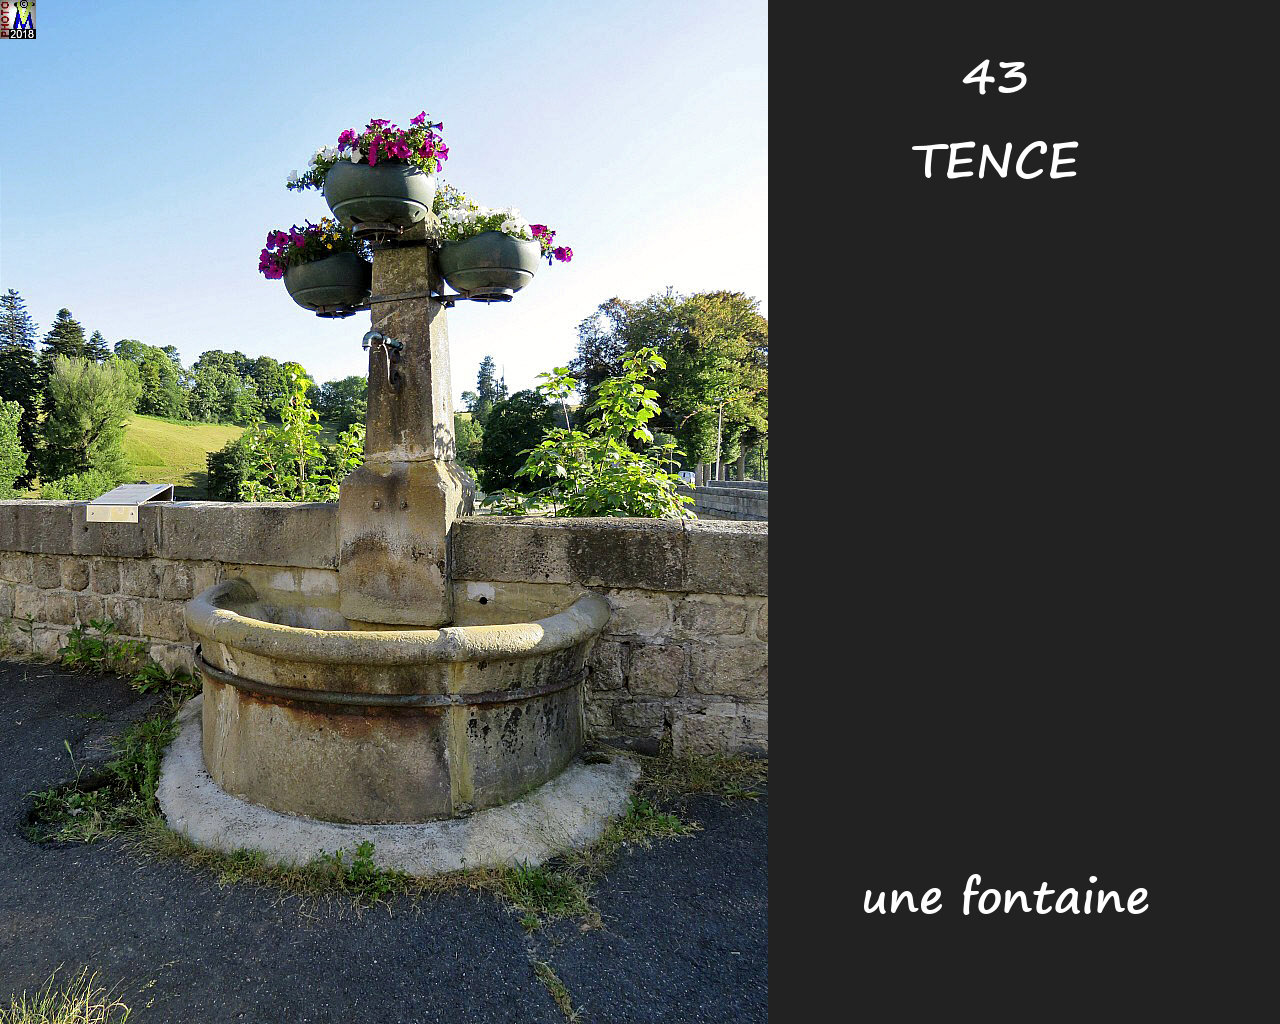 43TENCE_fontaine_110.jpg